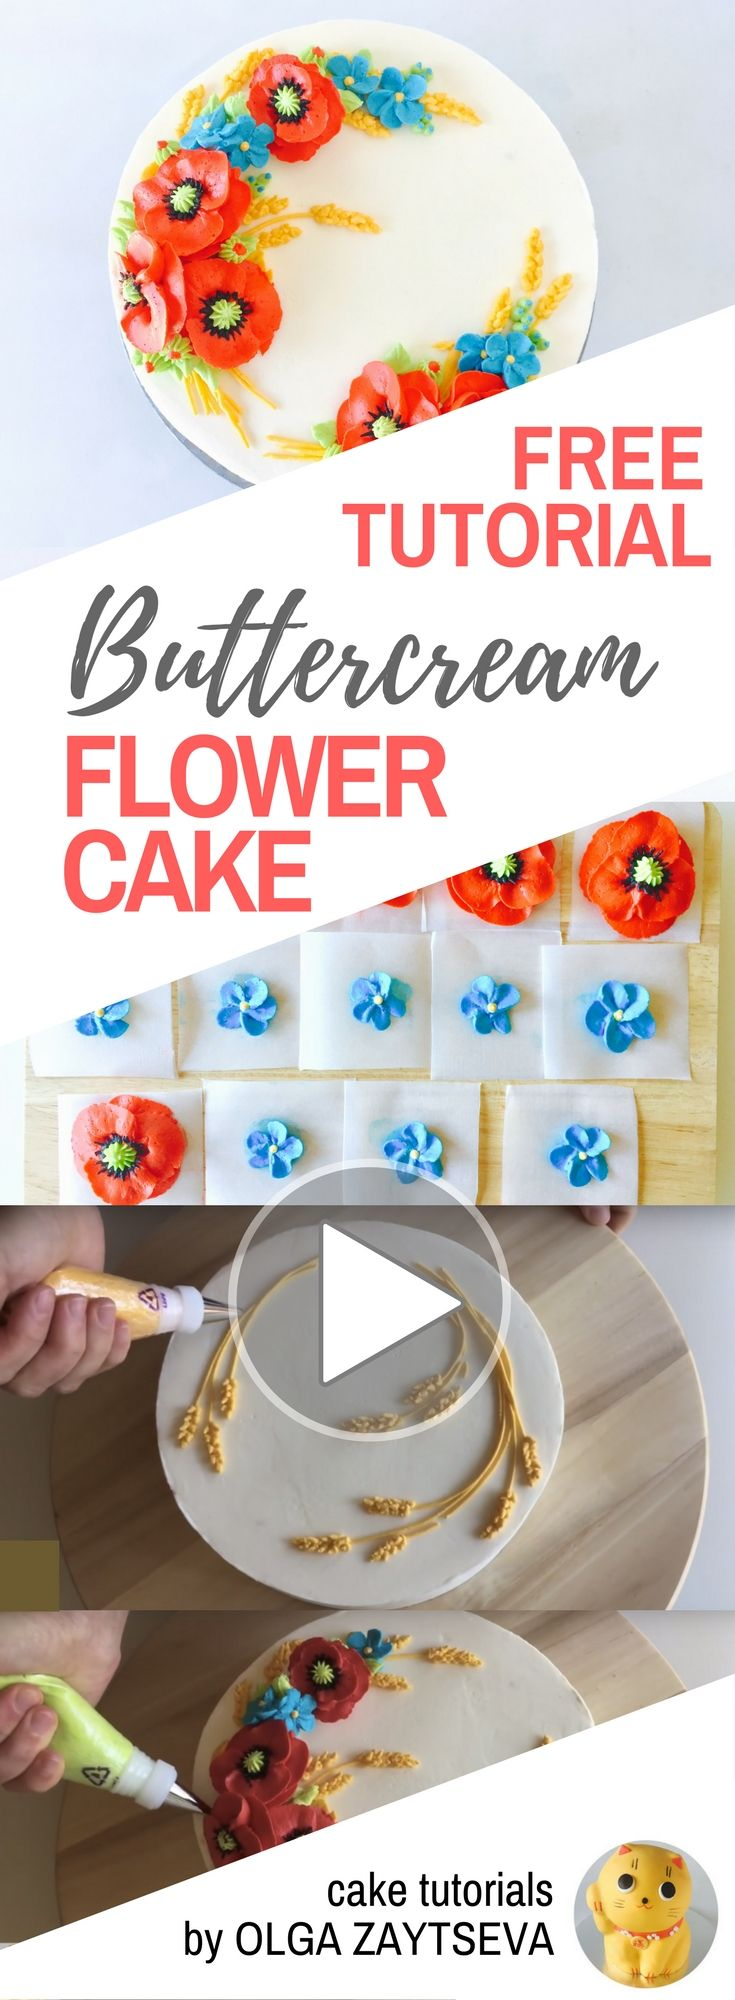 HOT CAKE TRENDS How to make Red Poppy Buttercream flower cake - Cake decorating tutorial by Olga Zaytseva. Learn how to make buttercream poppies, pipe cornflowers and wheat spikelets, and create this floral wreath cake.